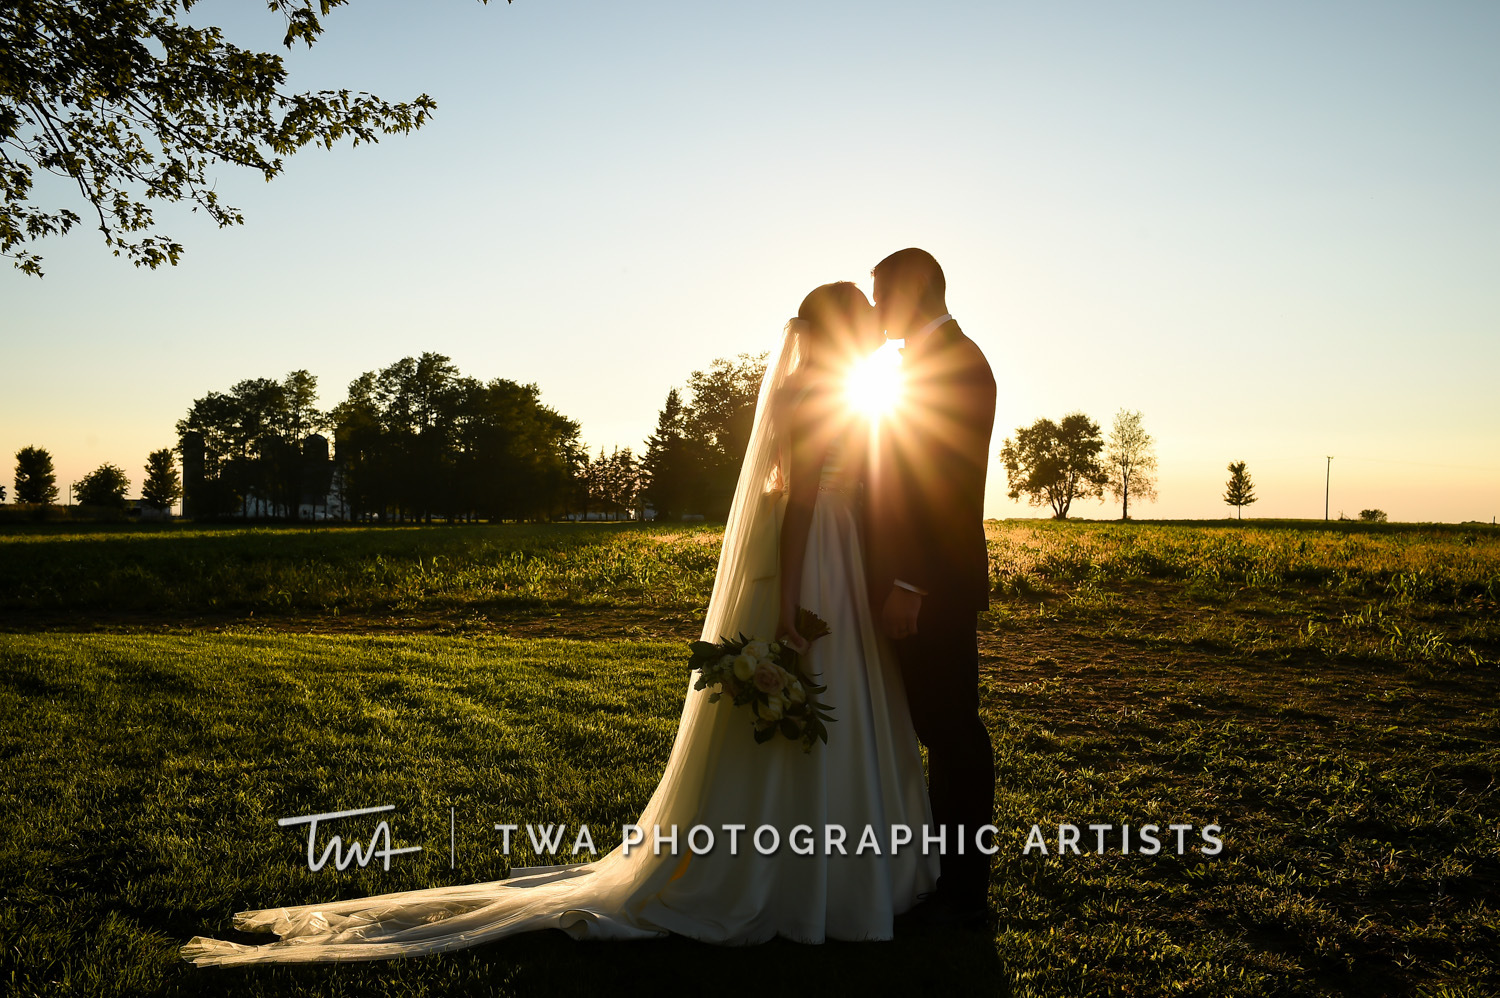 Chicago-Wedding-Photographer-TWA-Photographic-Artists-Private-Residence_Howes_Koczmara_SR_TL-0736